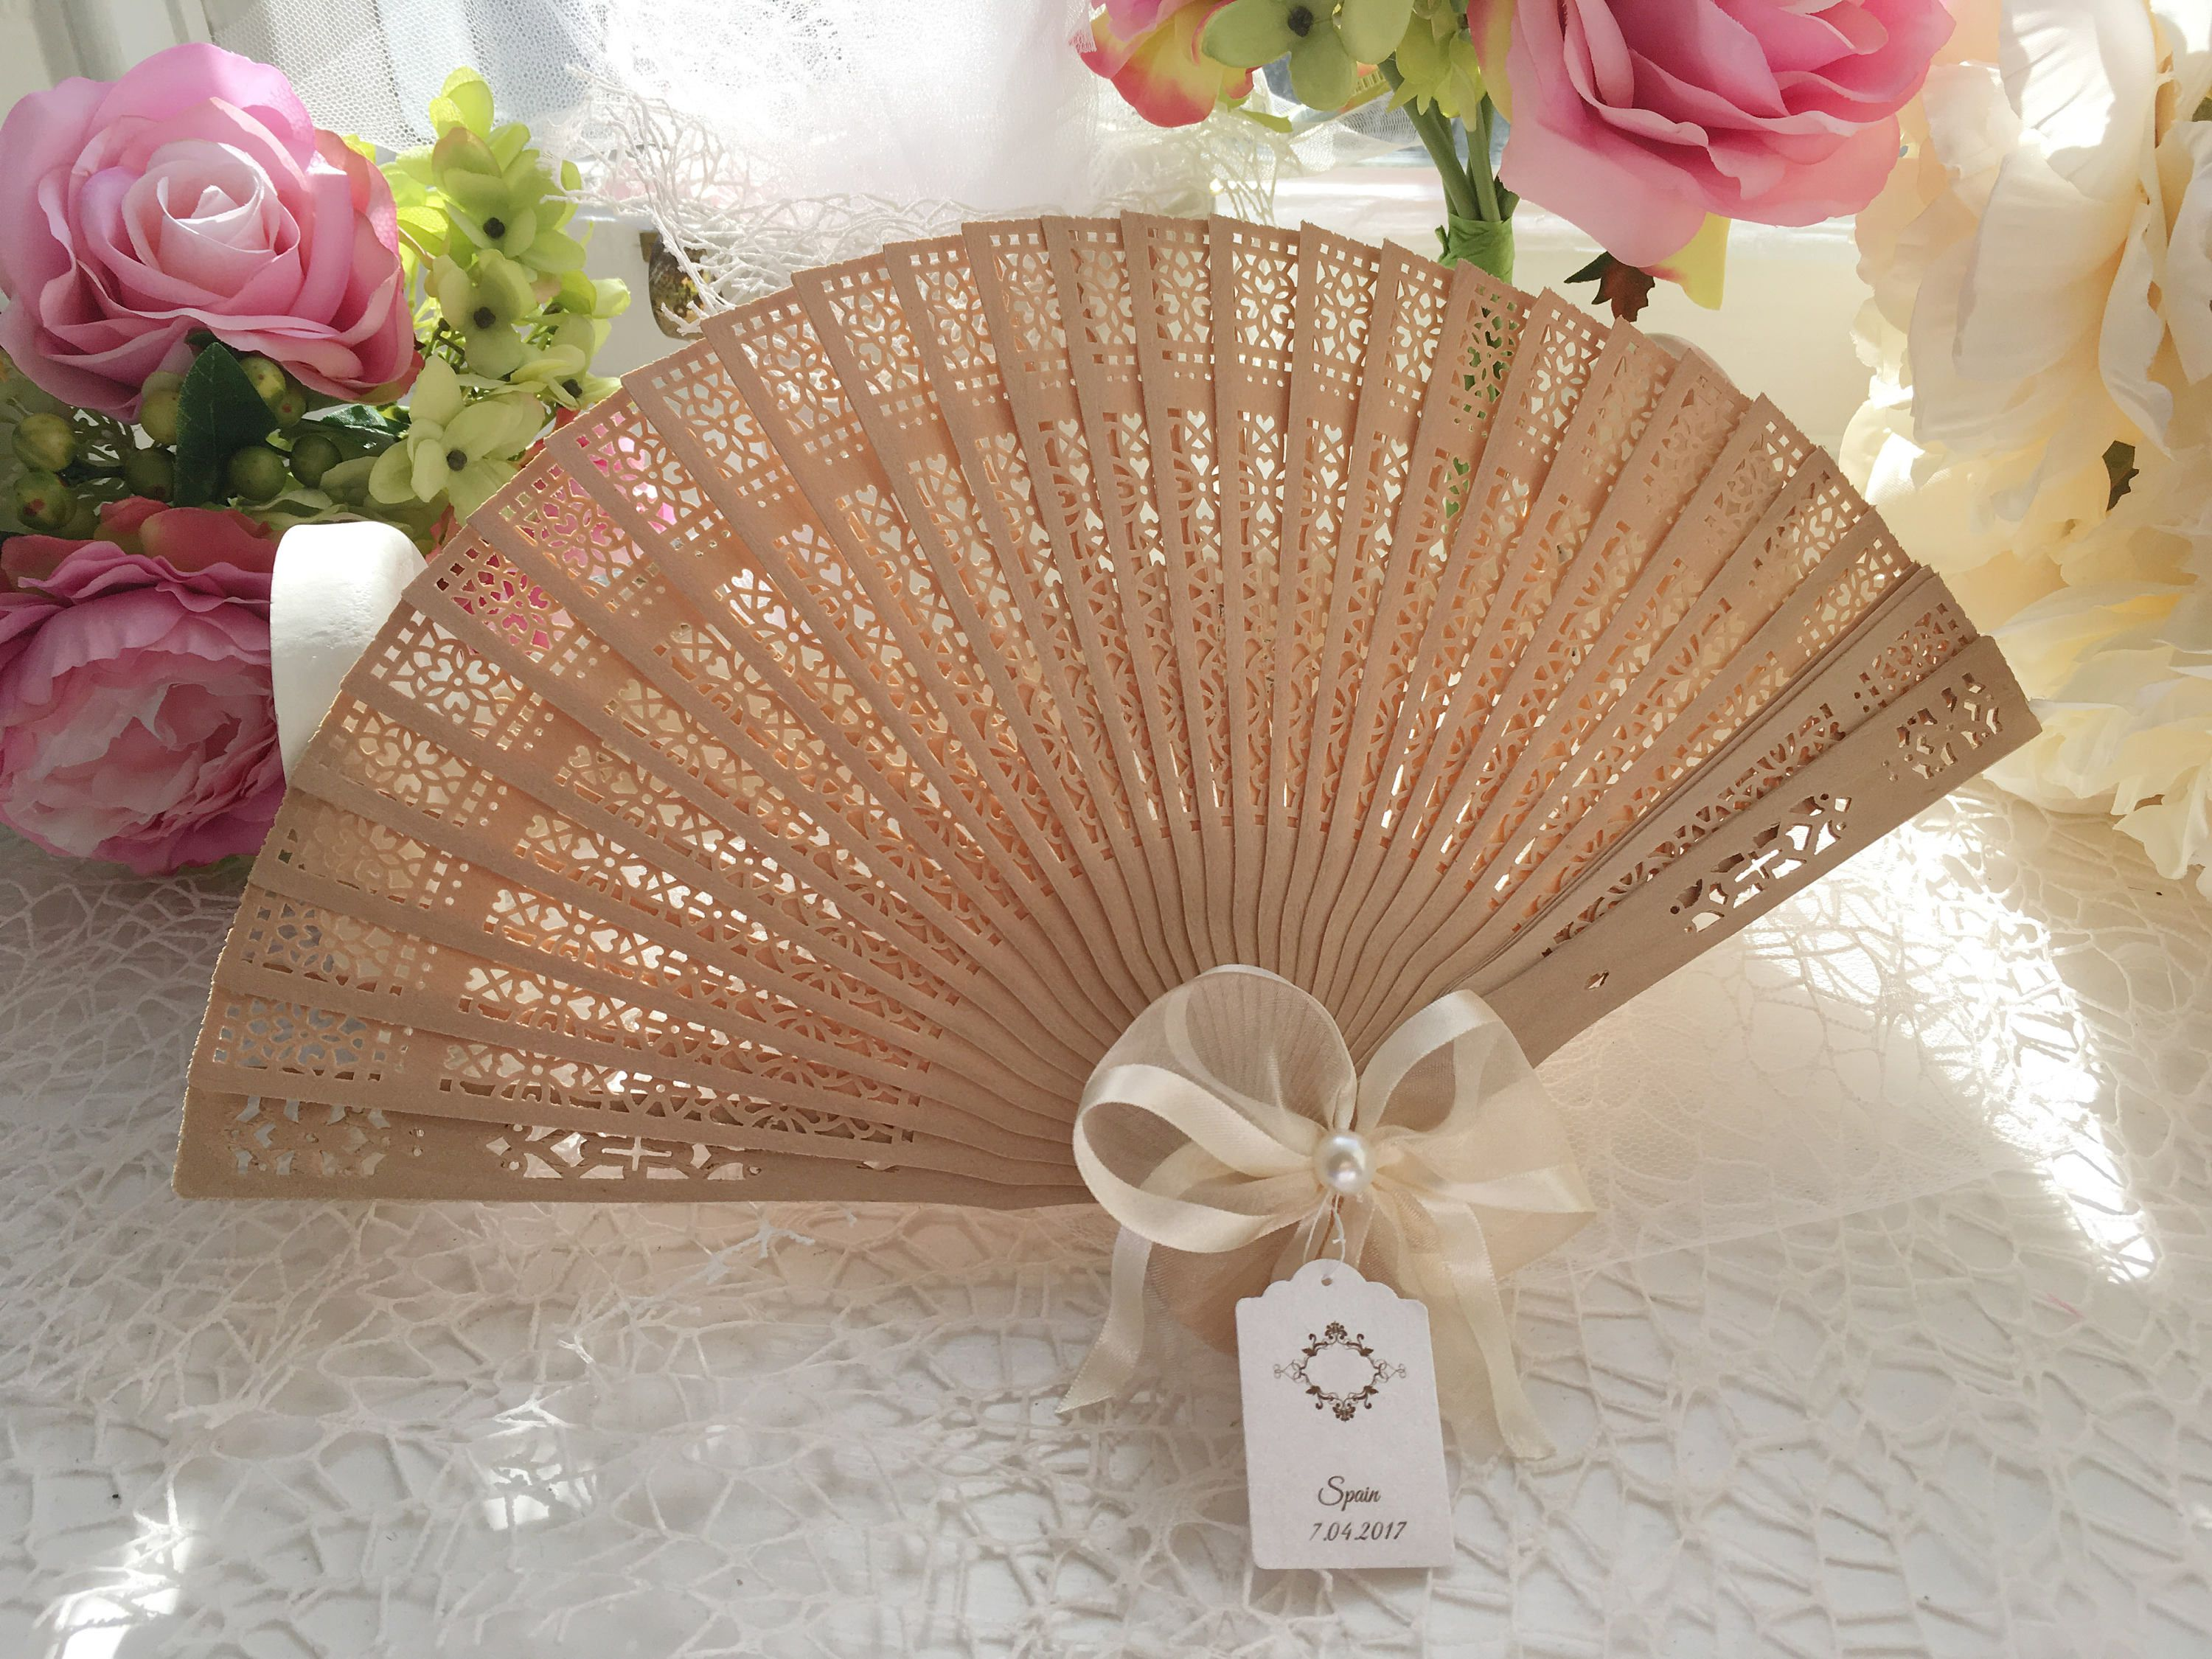 Sandal Wood Wedding Fans With Personalised Tags Favours Guest Gifts Wooden